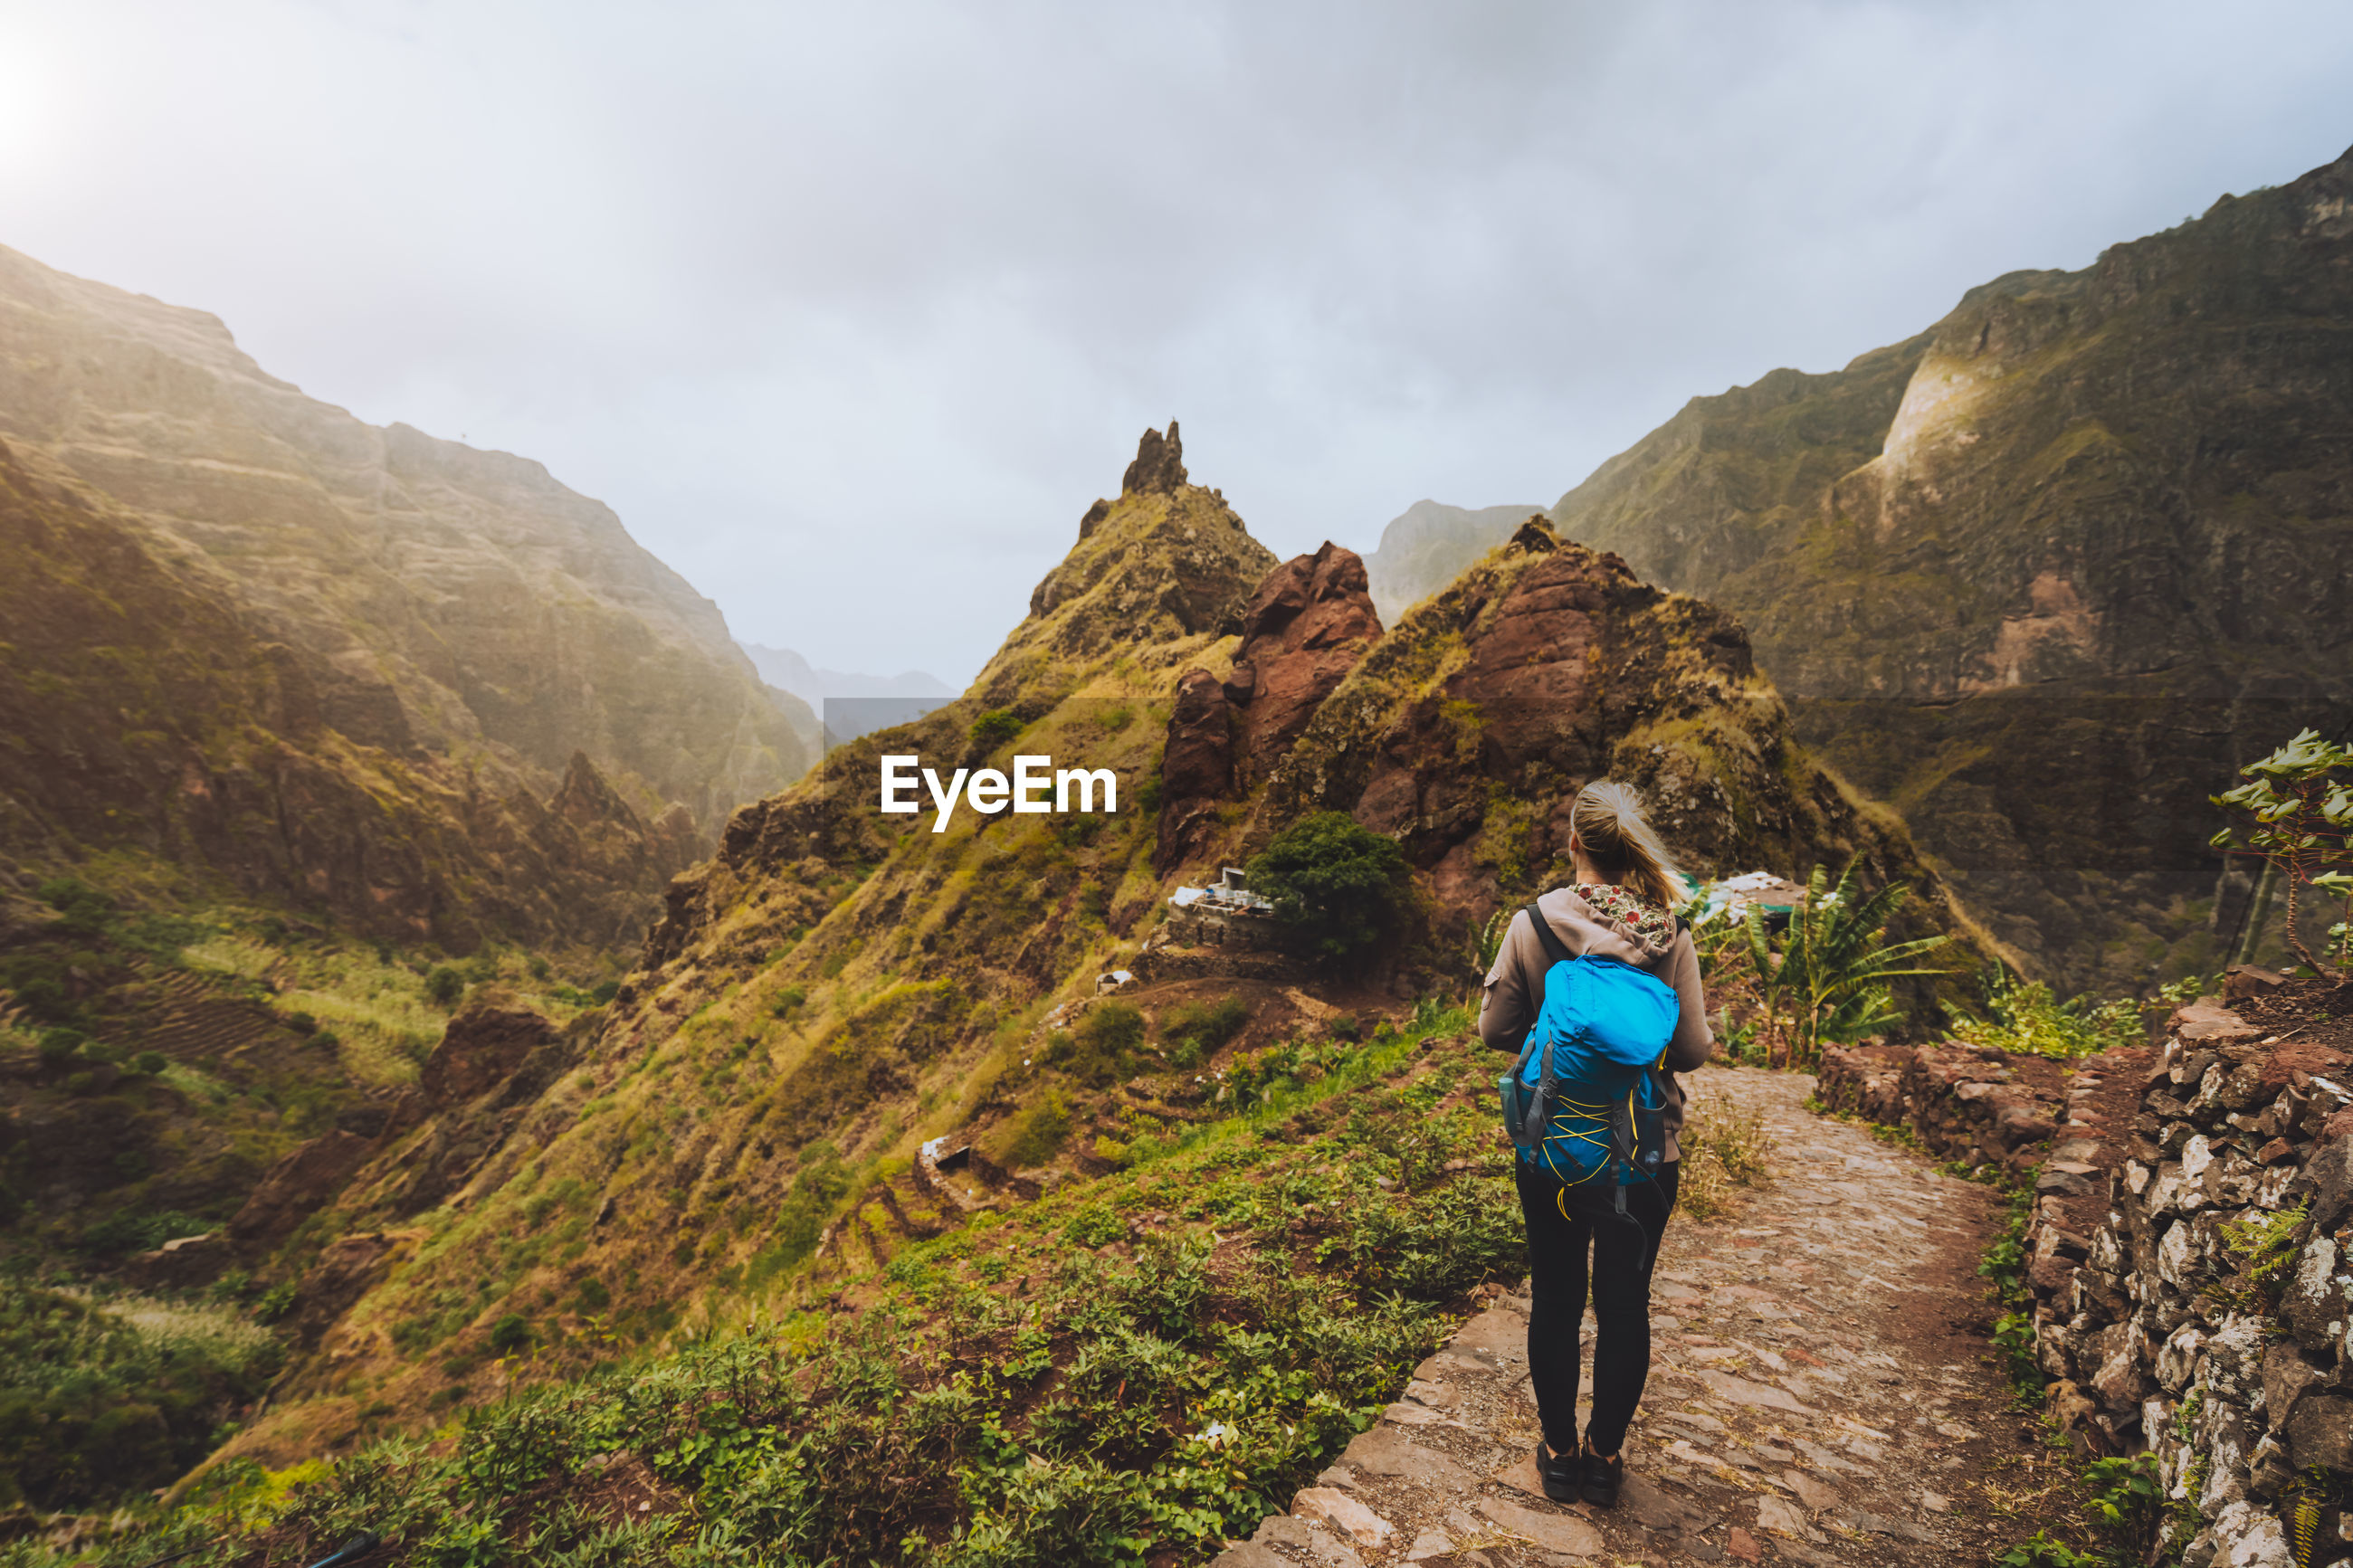 Rear view of woman walking on trail against mountains